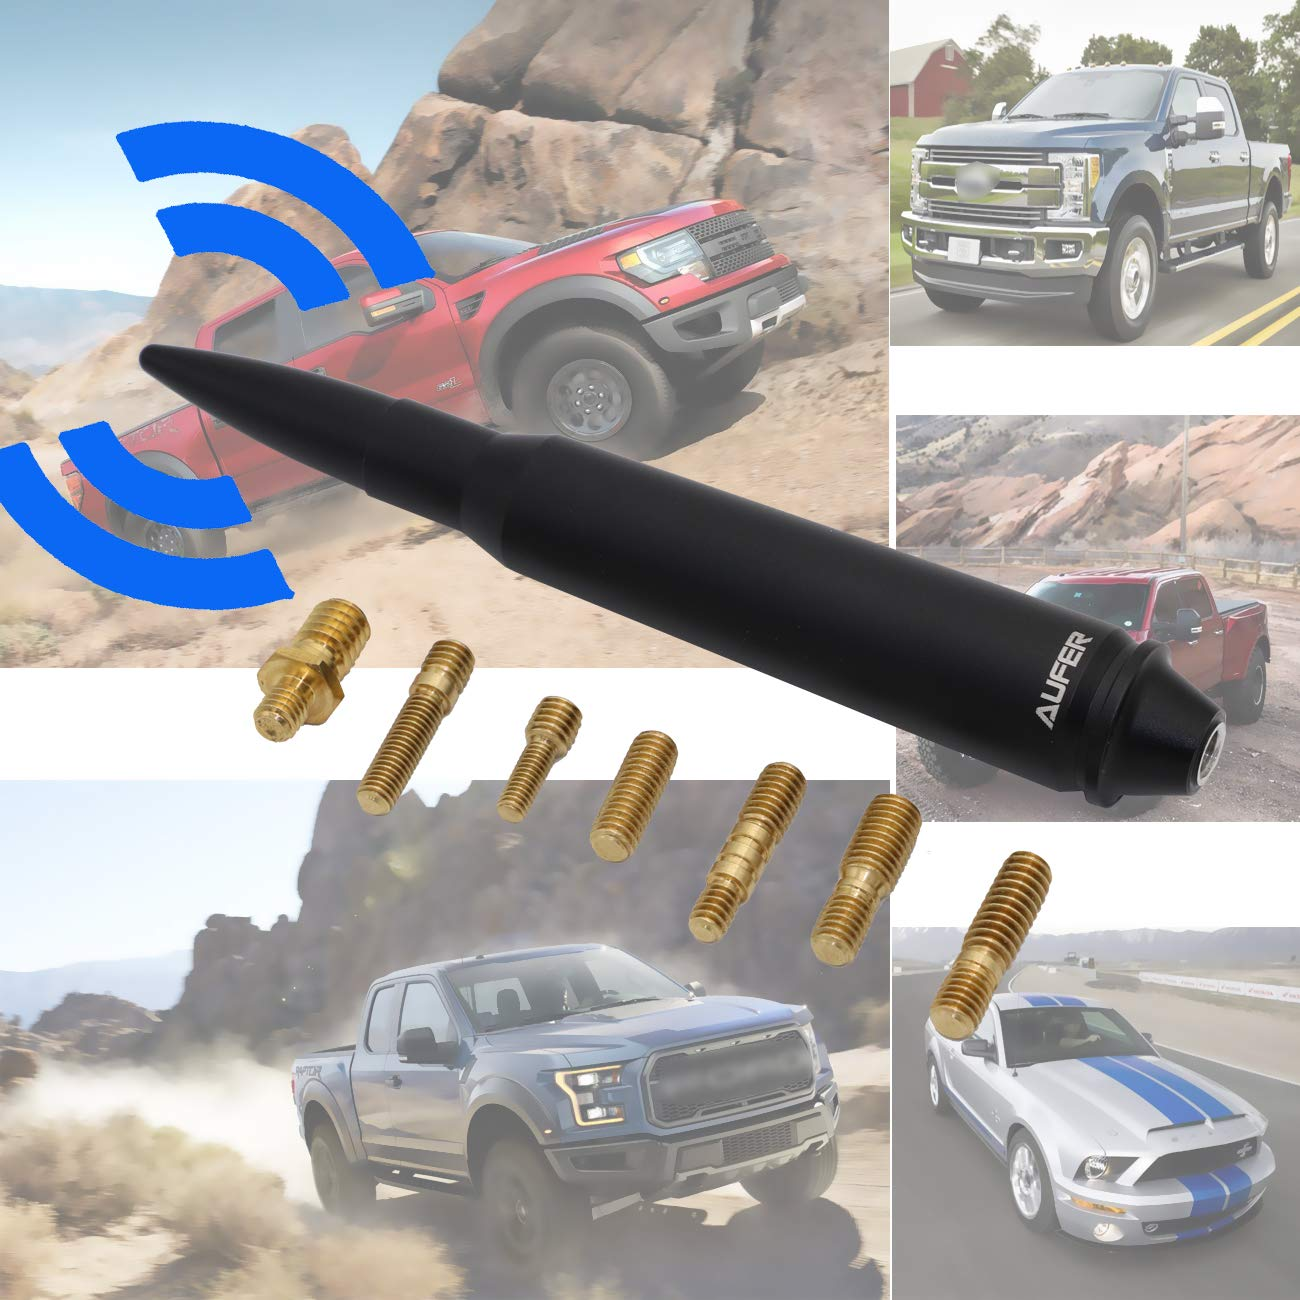 1999-2017 Ford F-250 F-350 Super Duty AUFER 5.7 Aluminum Bullet Antenna Fit for 1980-2017 Ford F-150 /& 1979-2009 Ford Mustang Most Ford Model /&